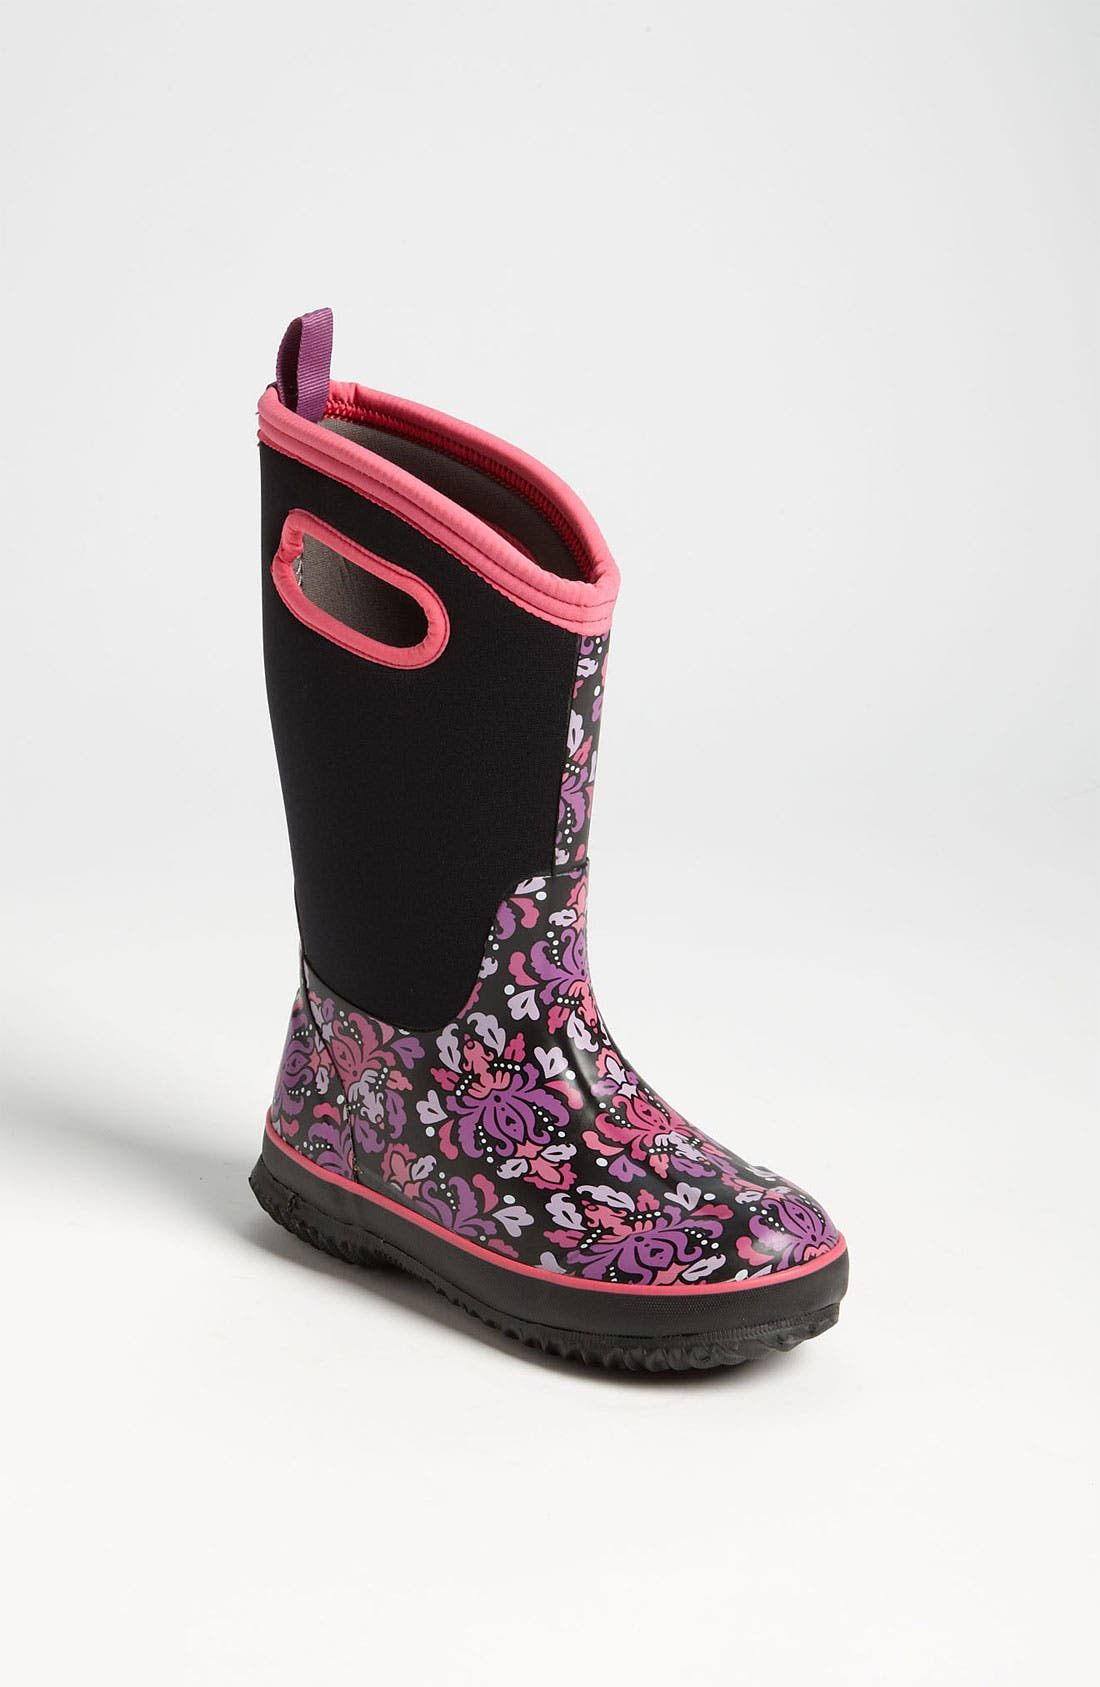 Alternate Image 1 Selected - Bogs 'Classic High - Fleur' Waterproof Boot (Toddler, Little Kid & Big Kid) (Nordstrom Exclusive)